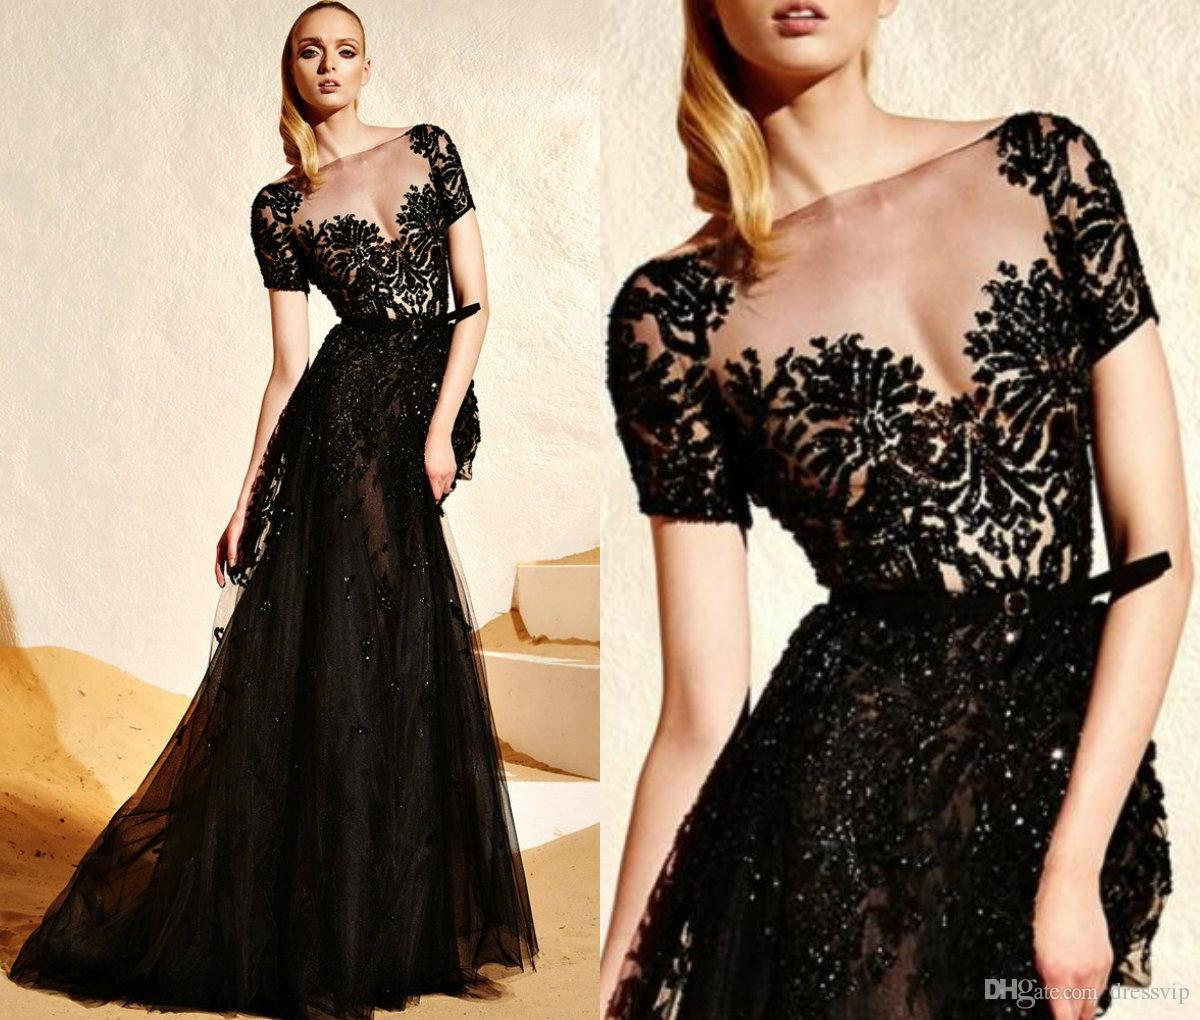 9958b19d31af4 2018 Zuhair Murad Evening Dresses Black Lace Applique Beaded Illusion Short  Sleeve Sexy Sweep Train Formal Dress Party Wear Prom Dress Plus Dresses  Plus ...